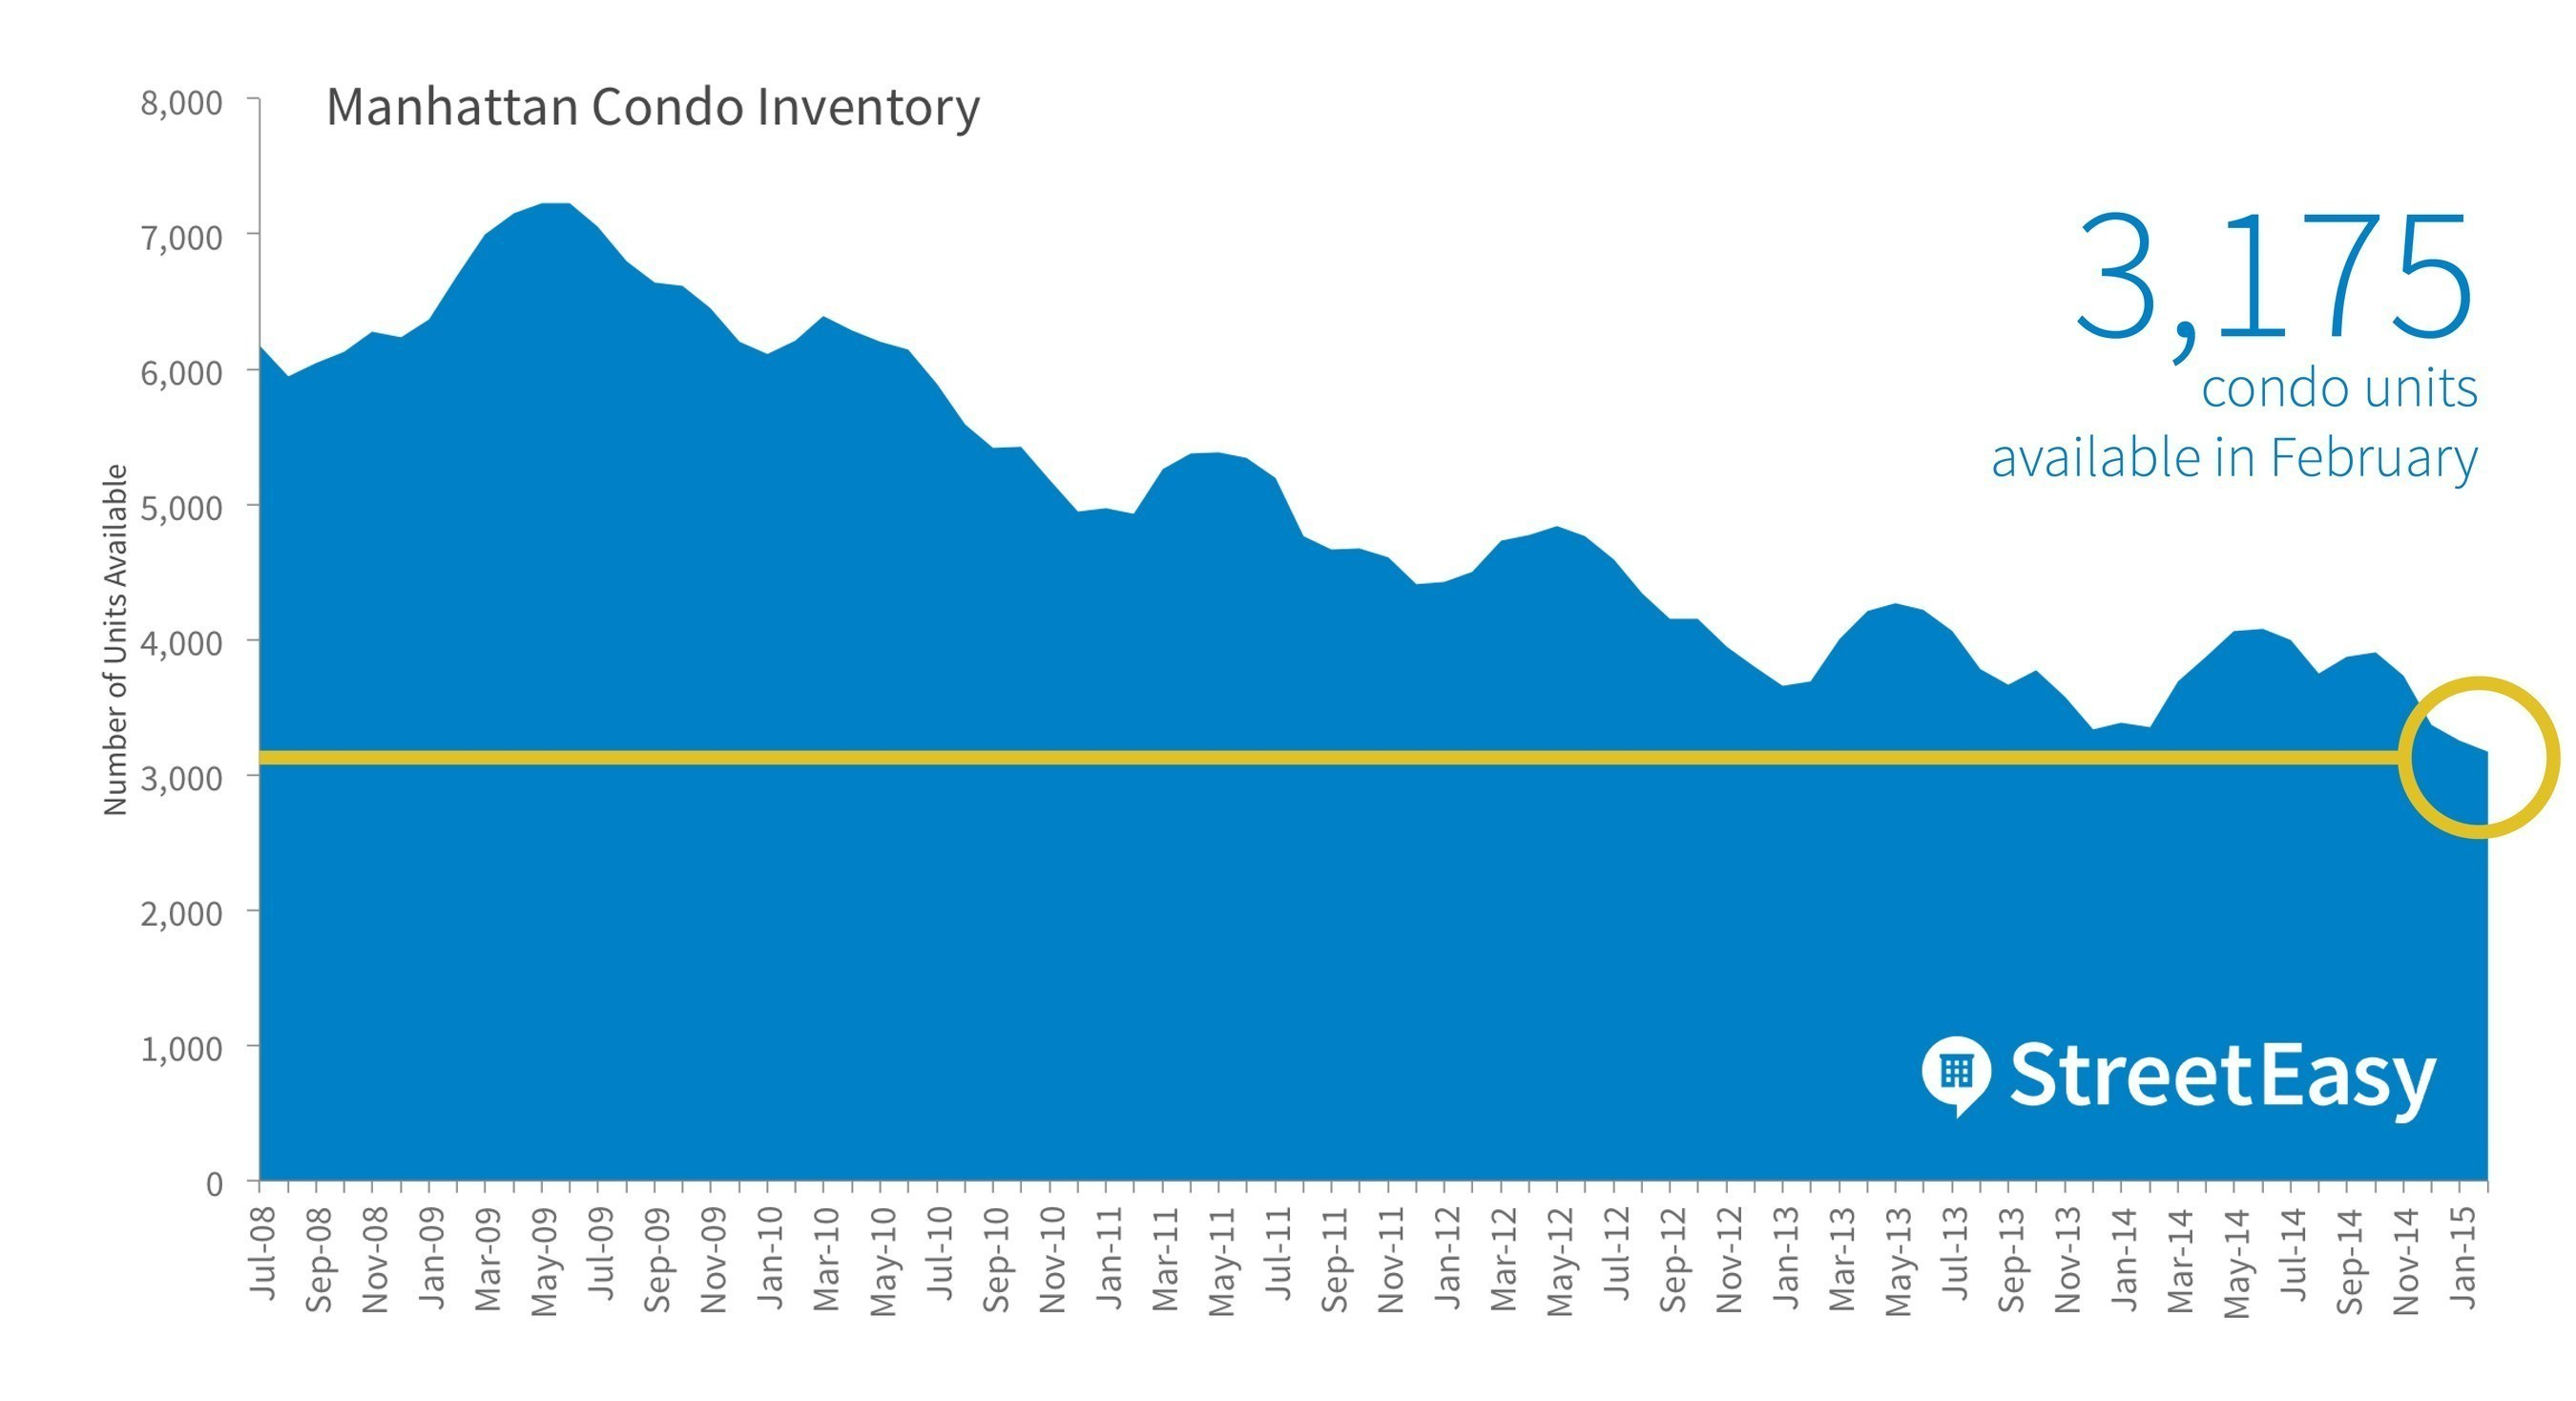 Manhattan Condo Inventory Hits Record Low in February as Pending Sales Surge